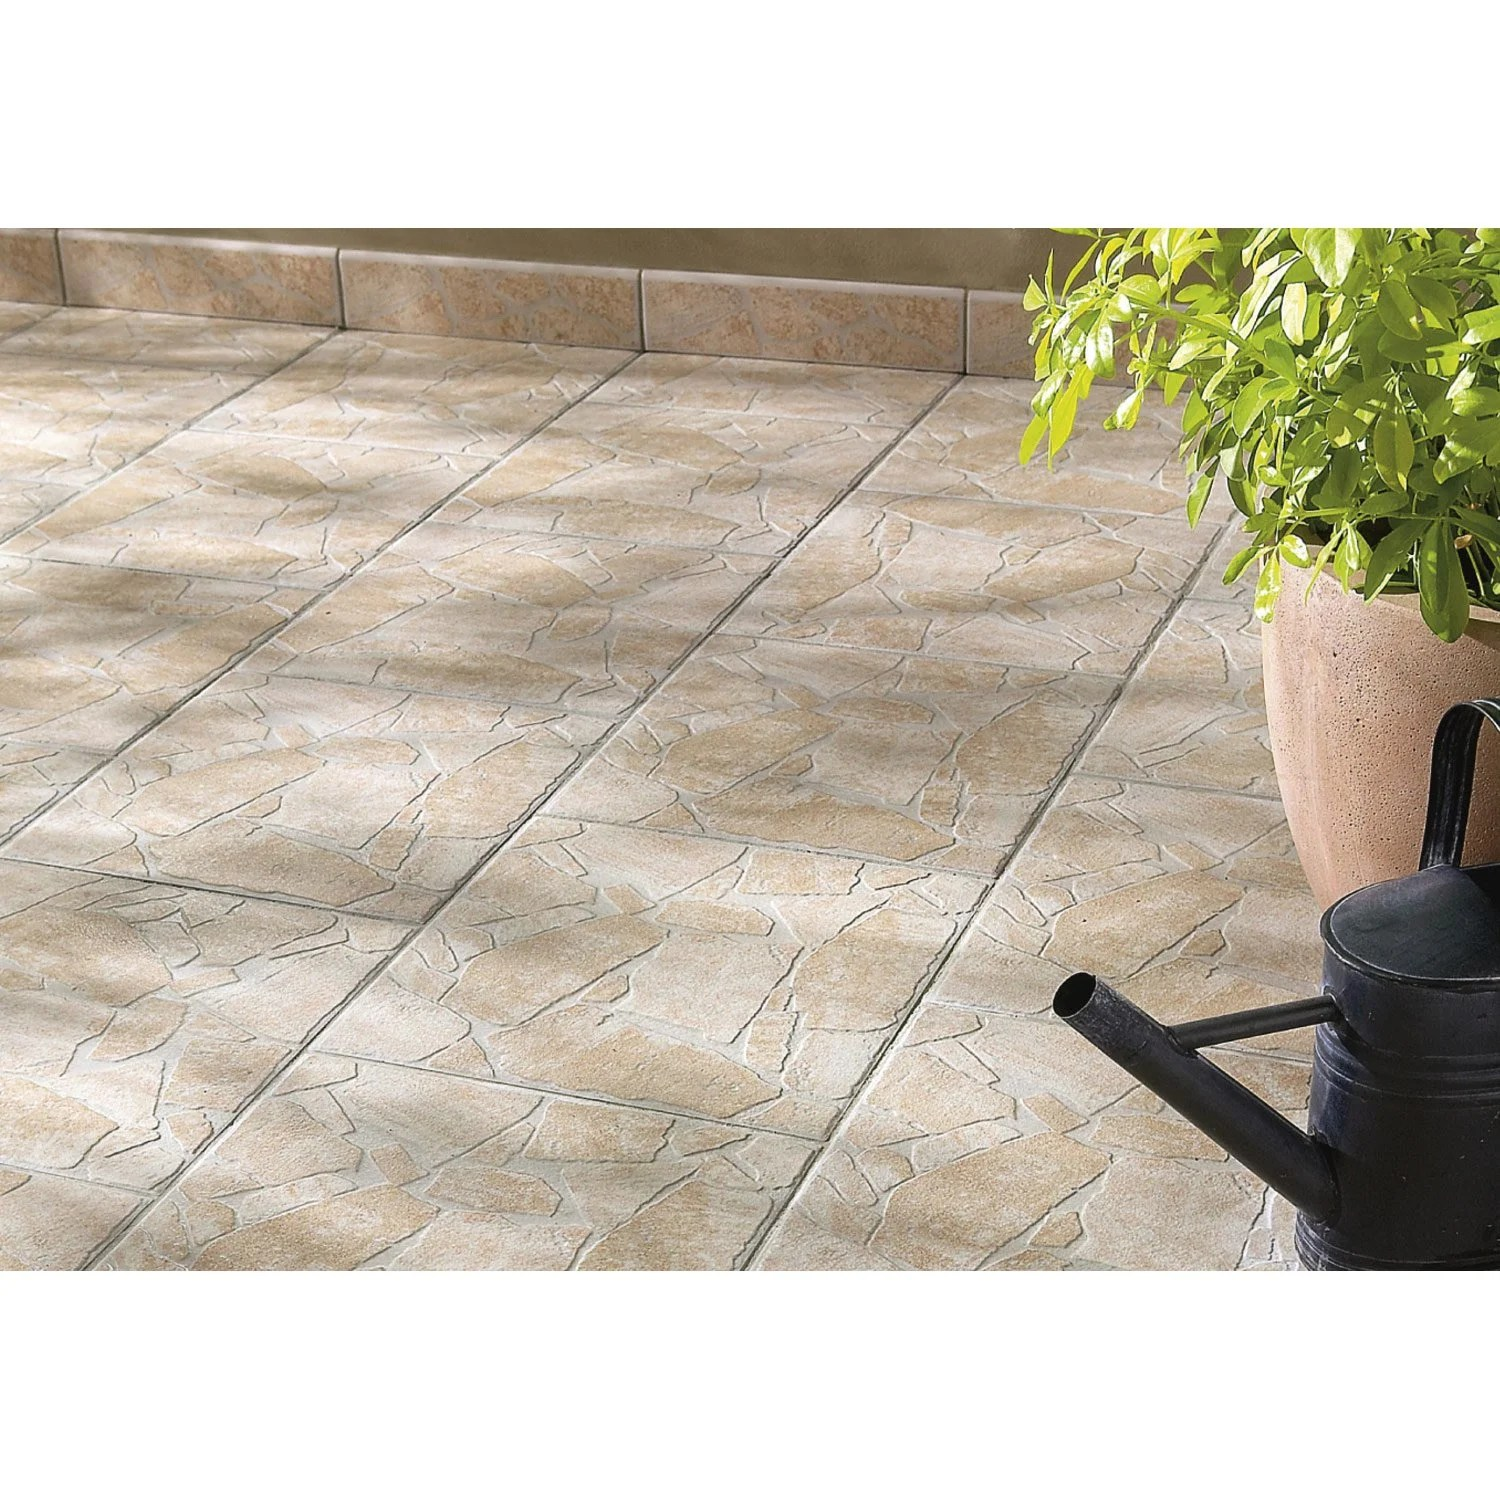 Dalle Carrelage Exterieur Point P Carrelage Sol Beige Aspect Pierre Opus 350 Beige L.35 X L